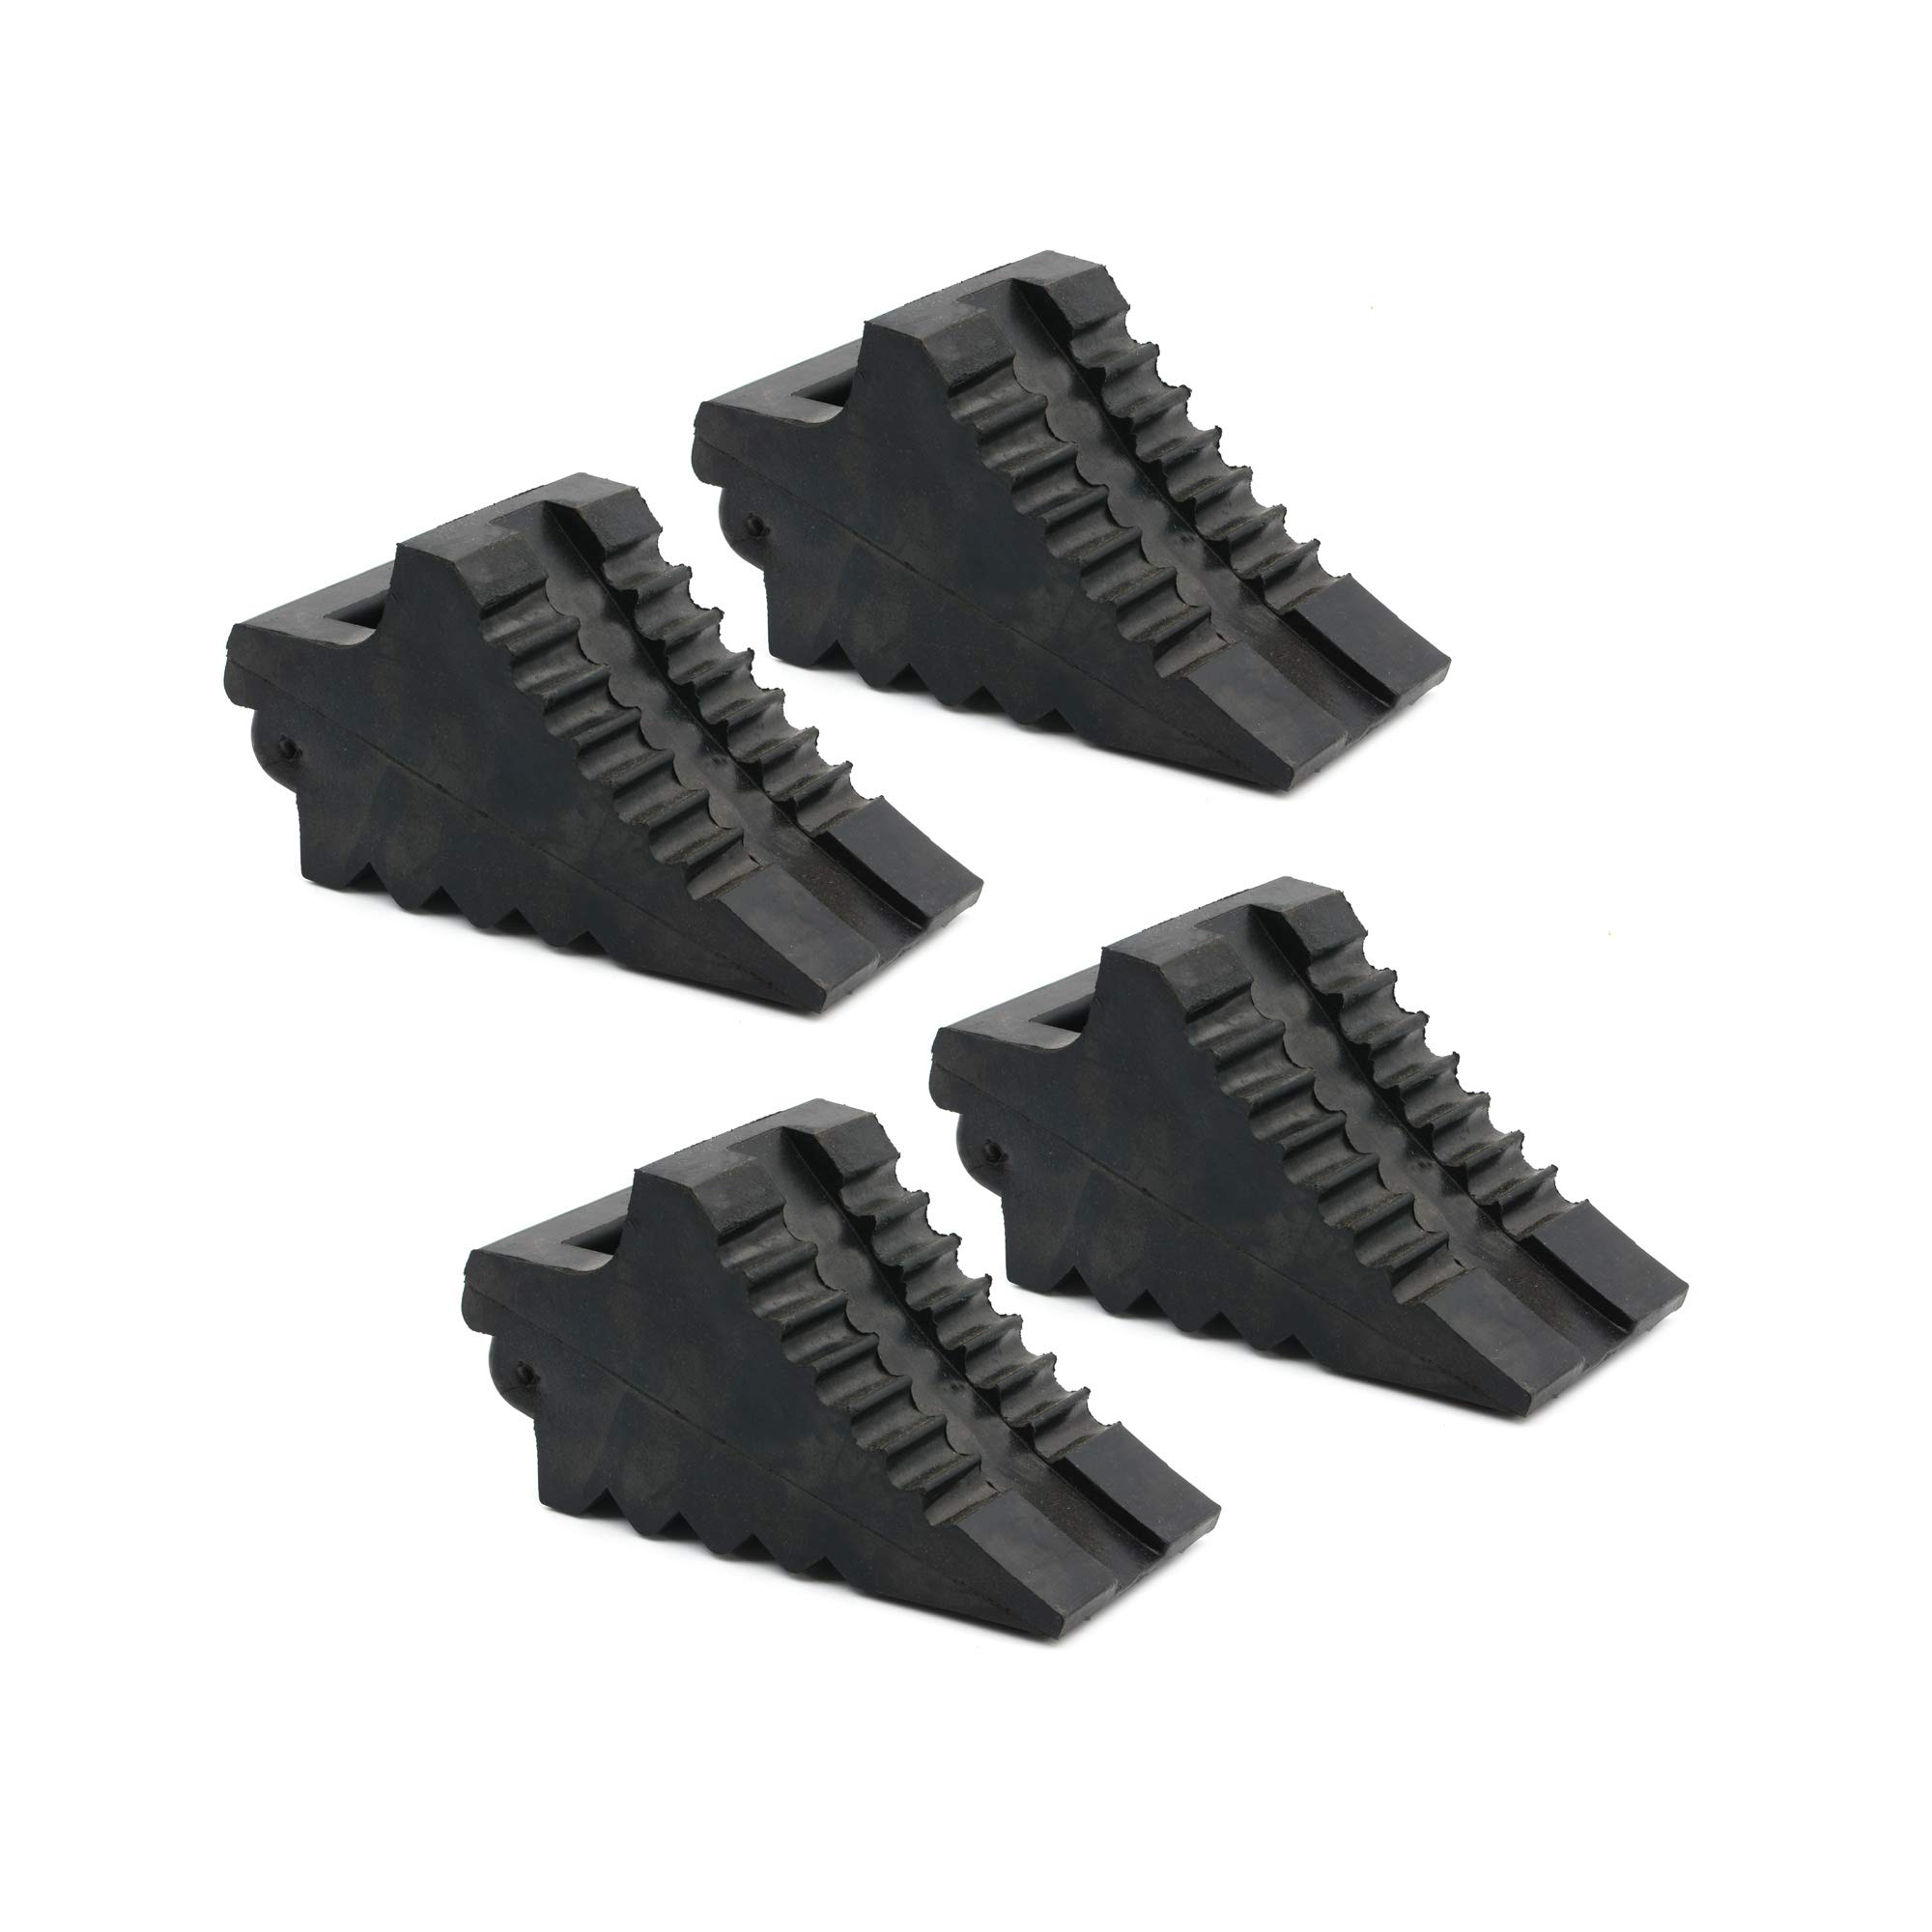 AFA Chock Blocks (4 Pcs) Rubber Dual Wheel Tire Chocks Front and Back for Camper, Trailer, RV, Truck, Car and ATV - Best Heavy Duty Vehicle Wedge Design with Handle and Garage Grip Bottom